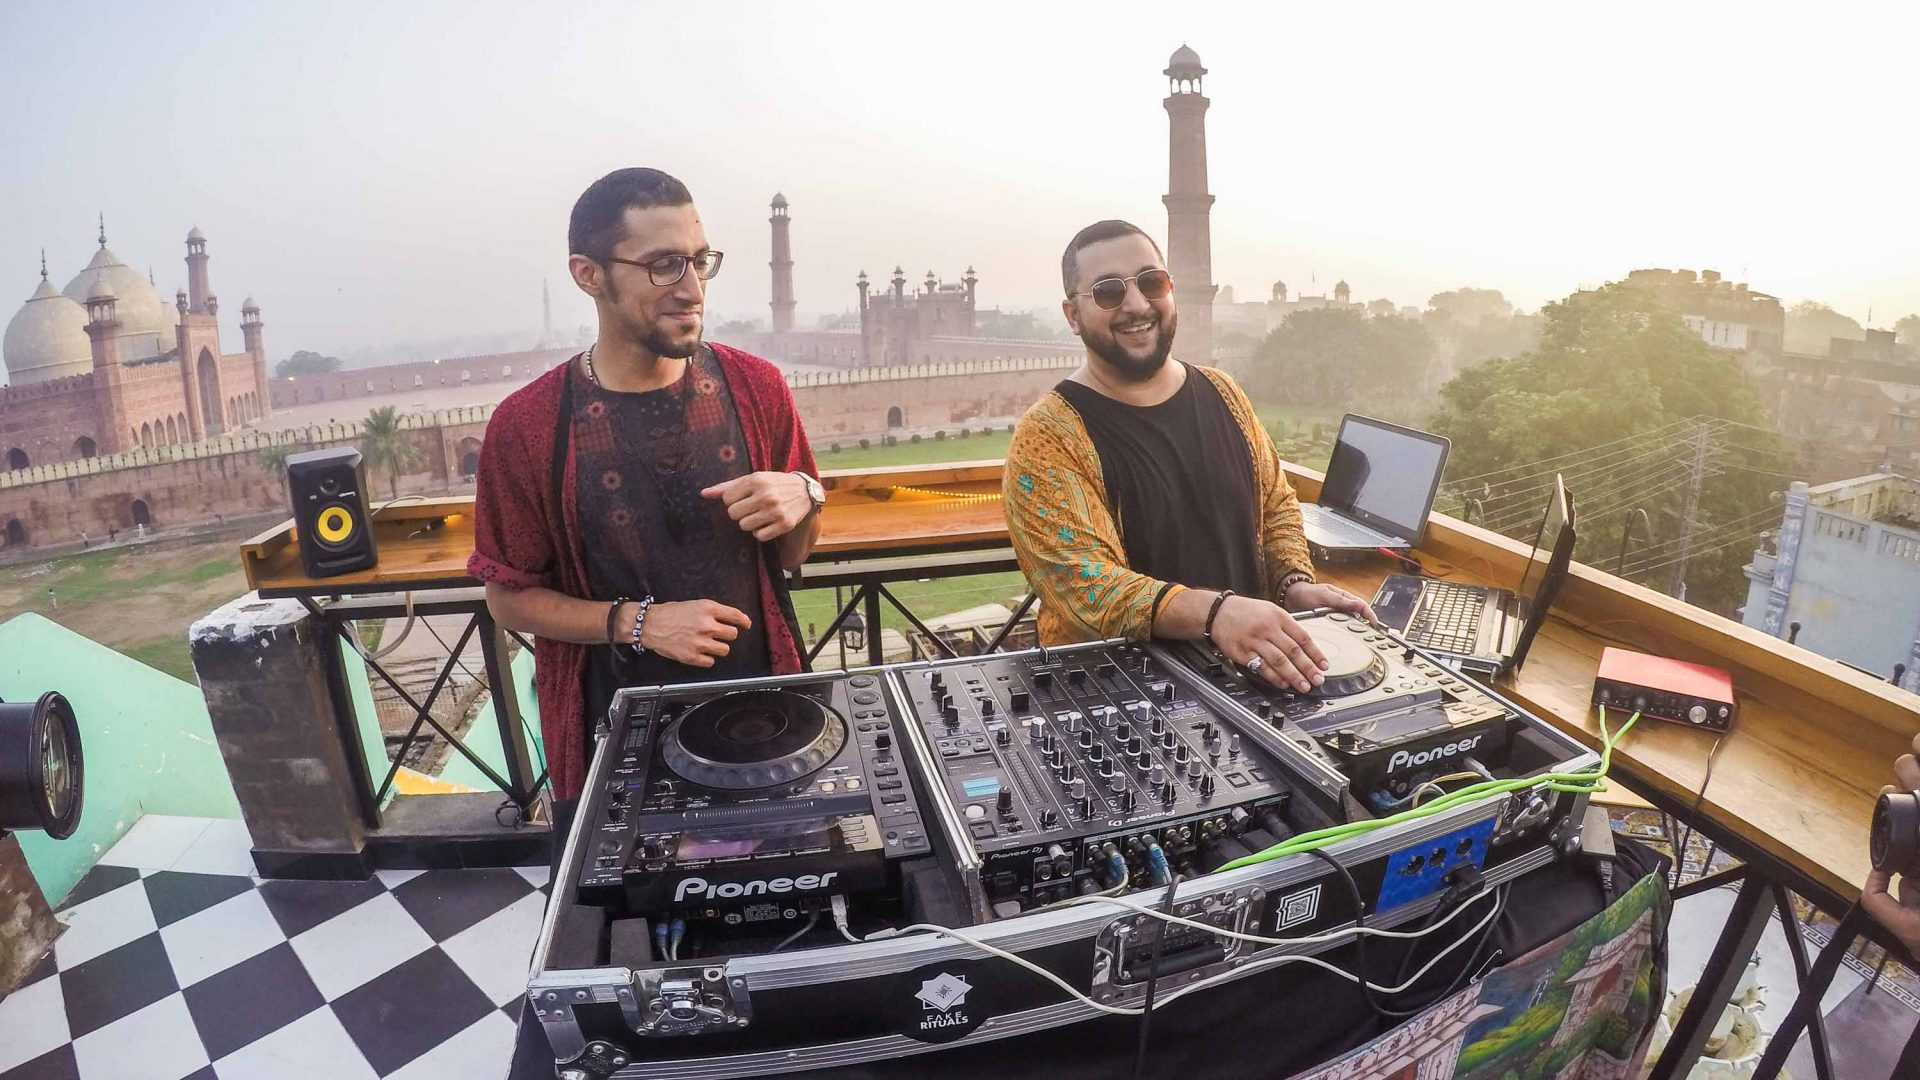 House music in Pakistan? Meet the innovators cranking up the volume